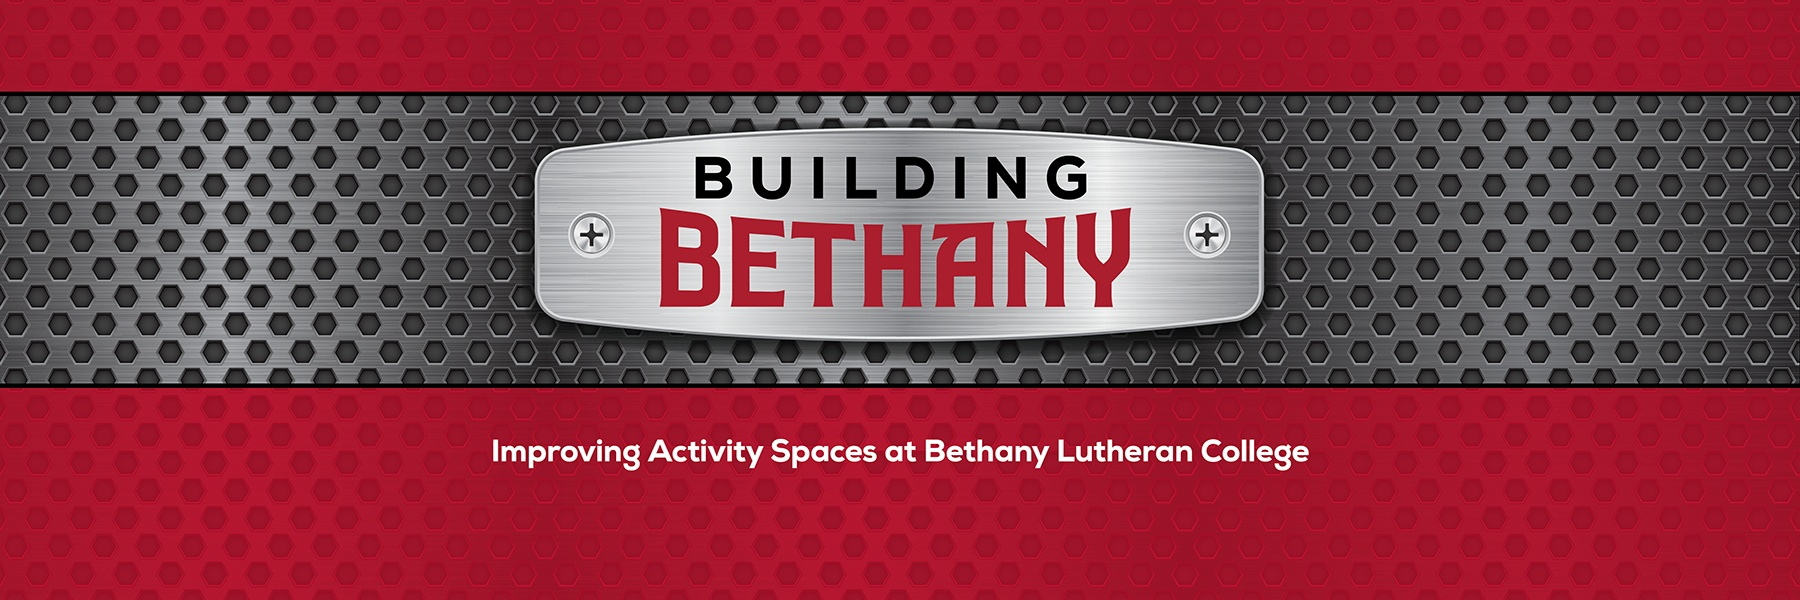 "graphic with words ""building bethany - Improving Activity Spaces at Bethany Lutheran College"""